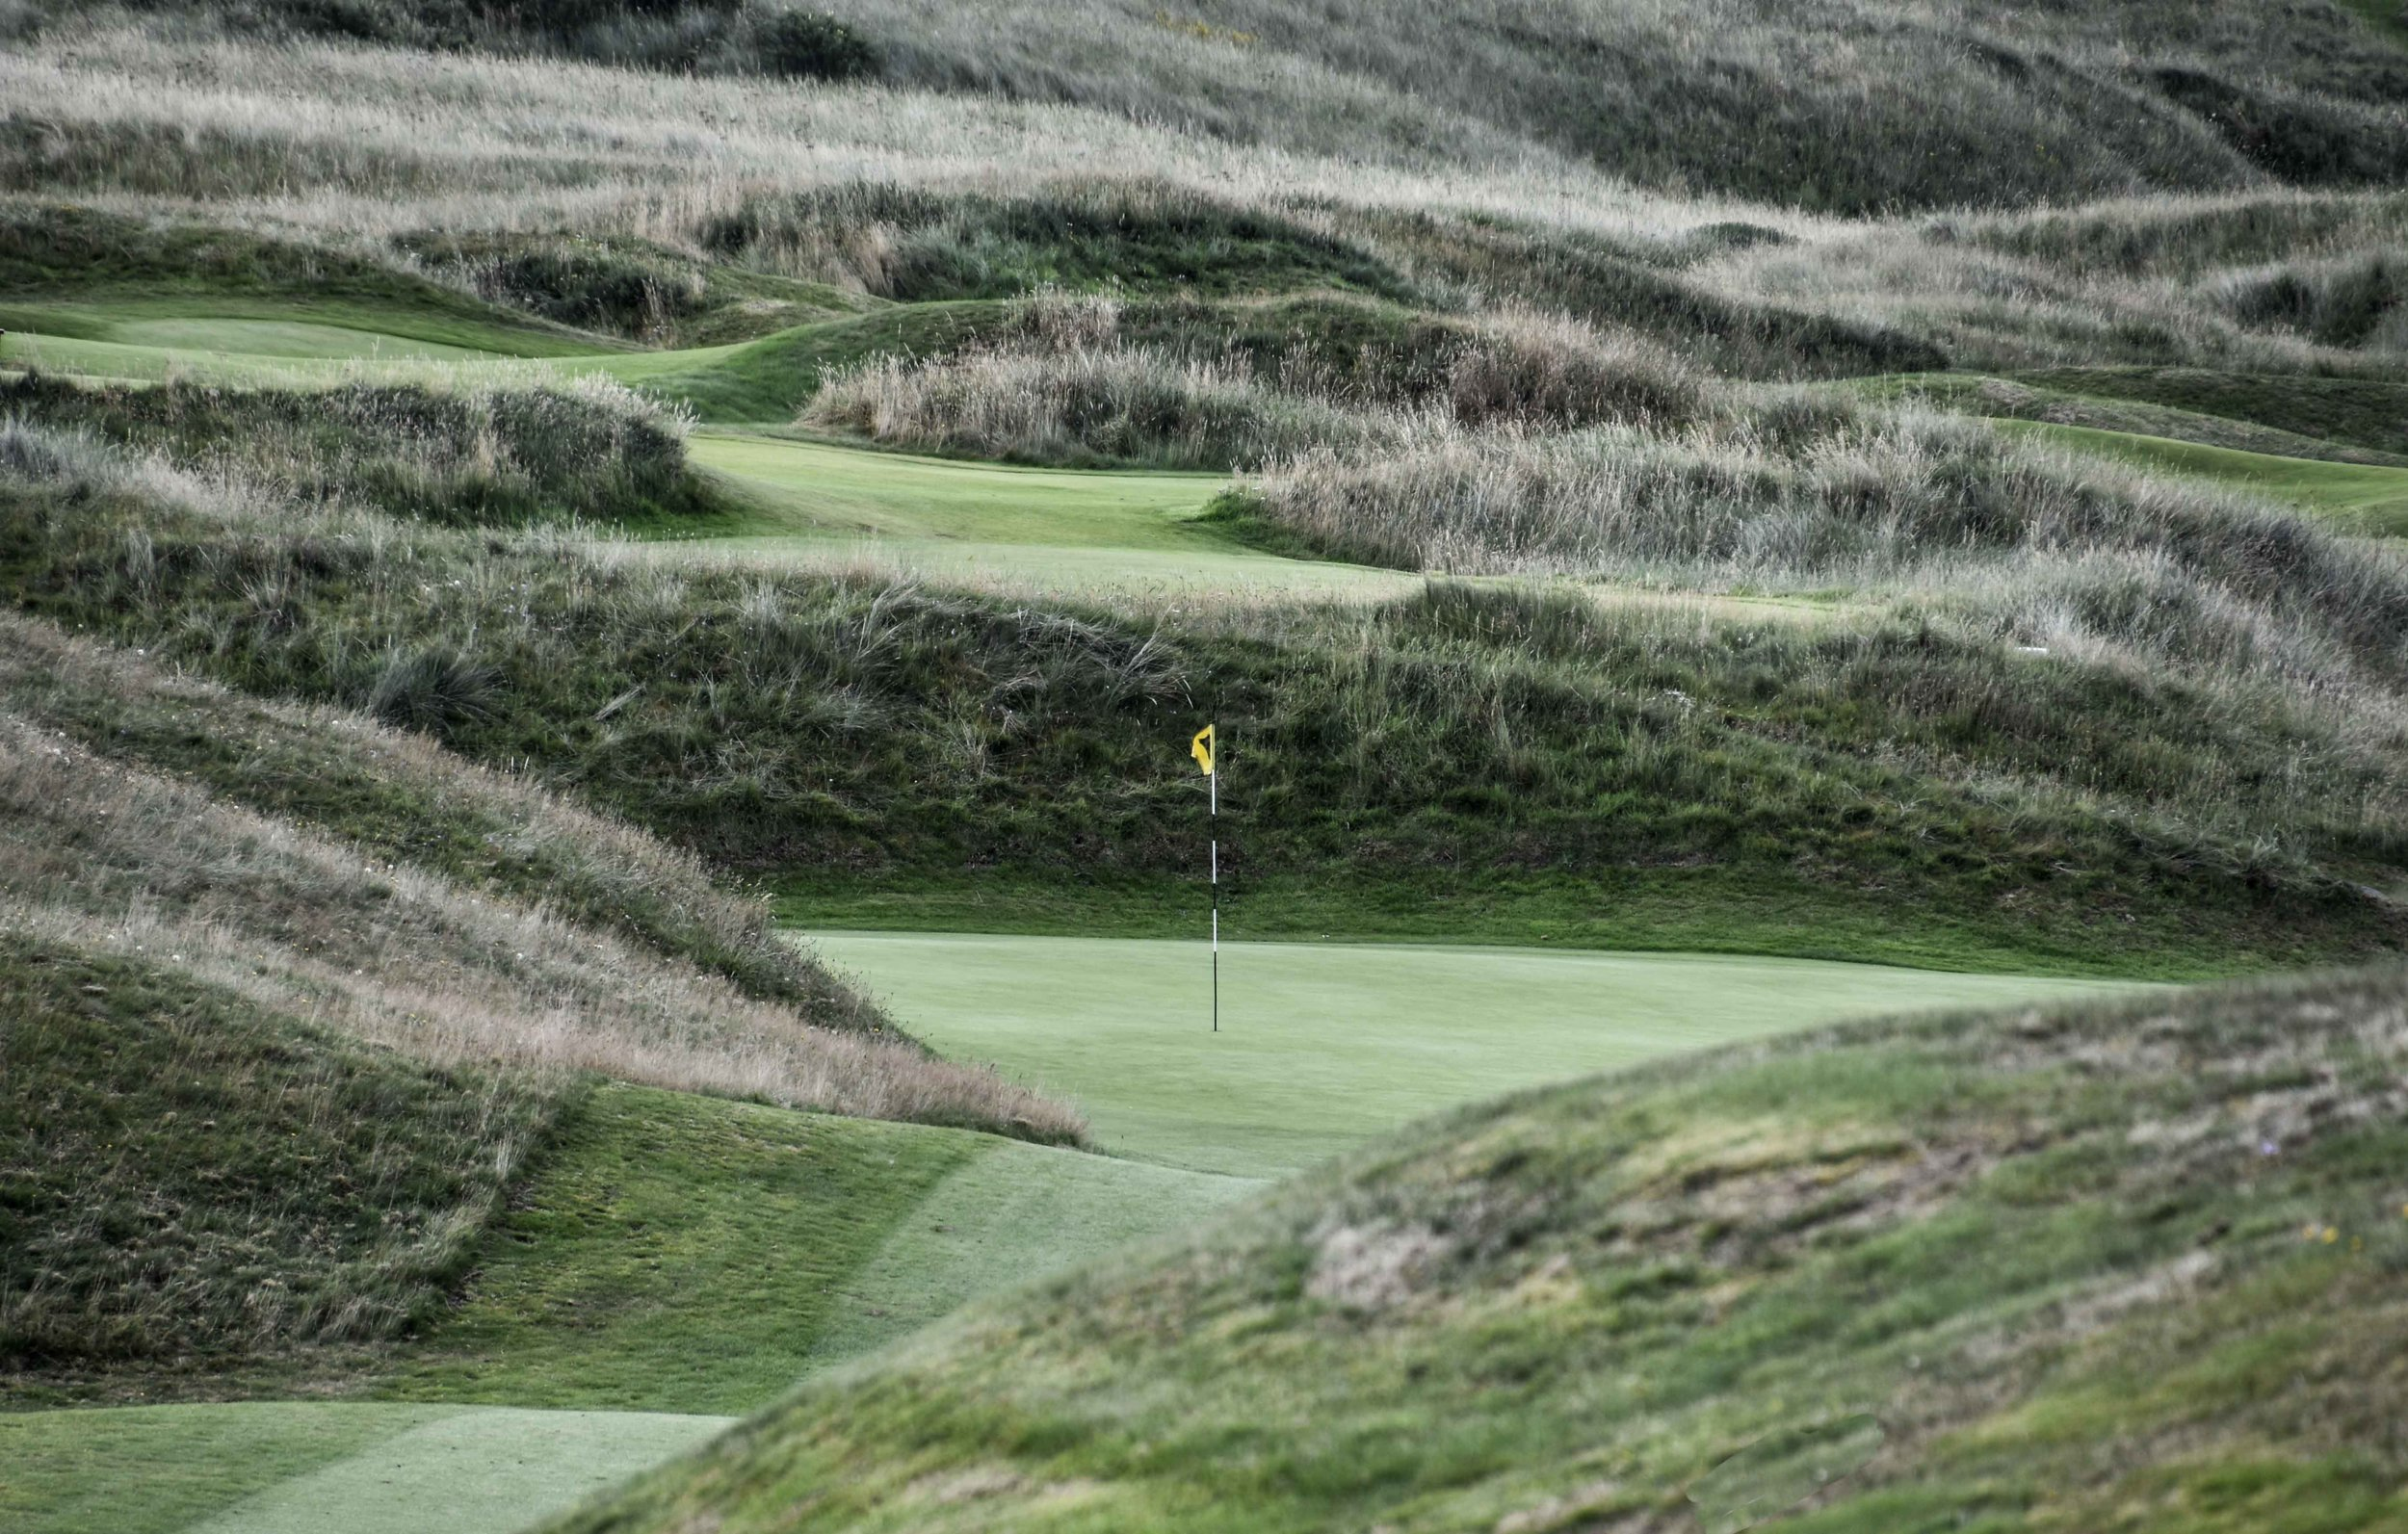 The 2nd hole at Miurcar. Shameless plug: I would hit my 2nd shot to 3 feet right after I took this photo.